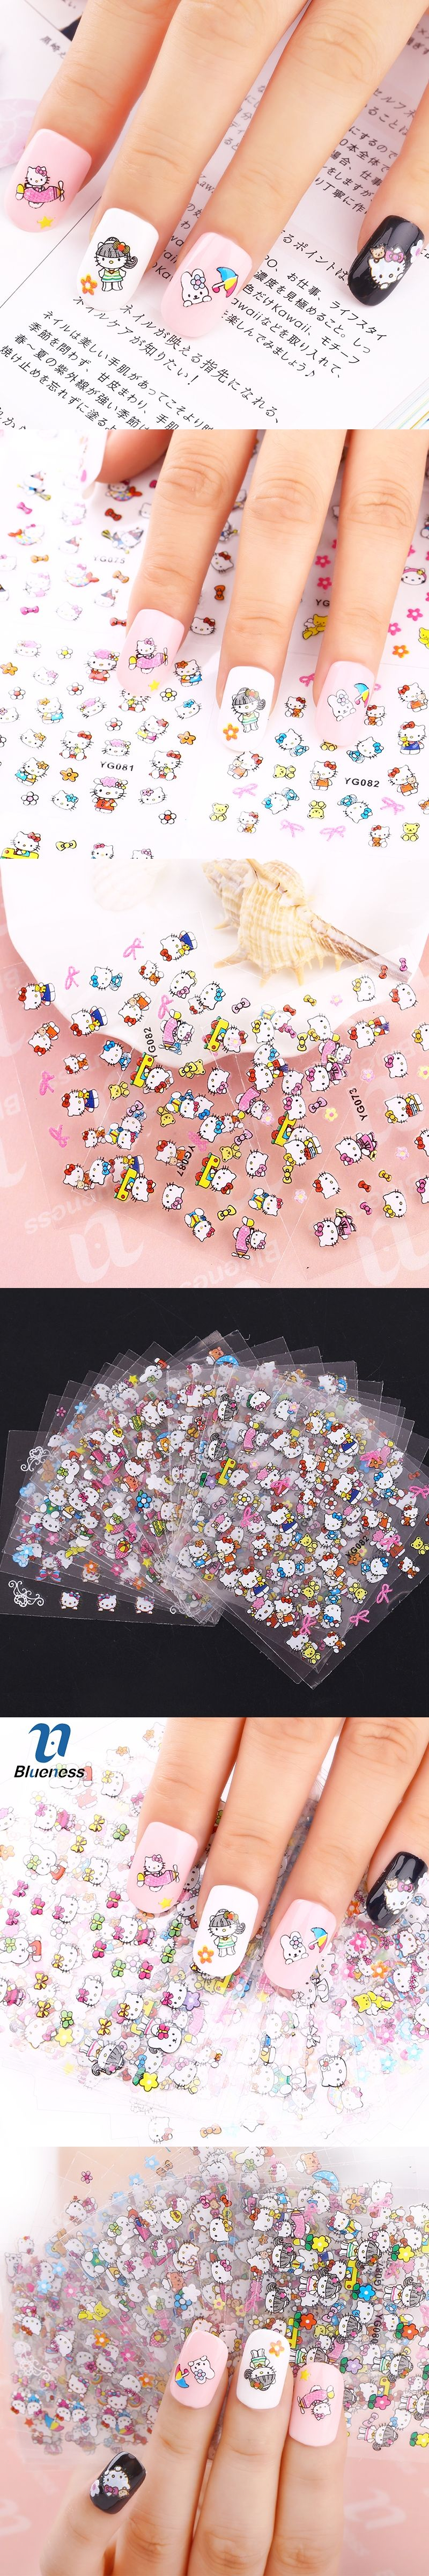 24 Manicure Designs Colorful Hello Kitty Nail Stickers Nails Diy